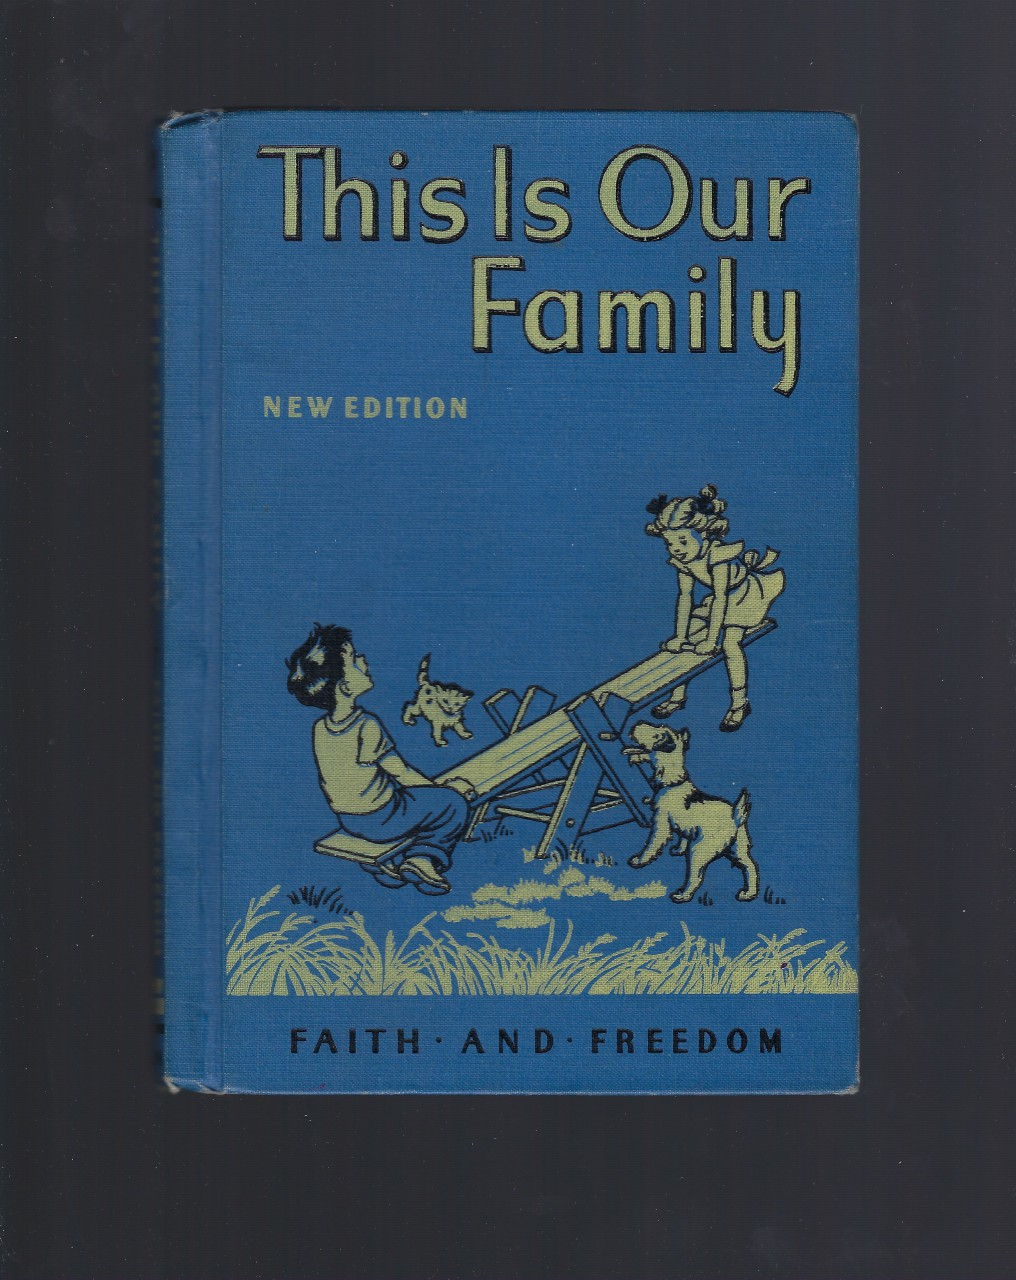 Image for This Is Our Family Primer 1951 Faith and Freedom Reader Very Nice!